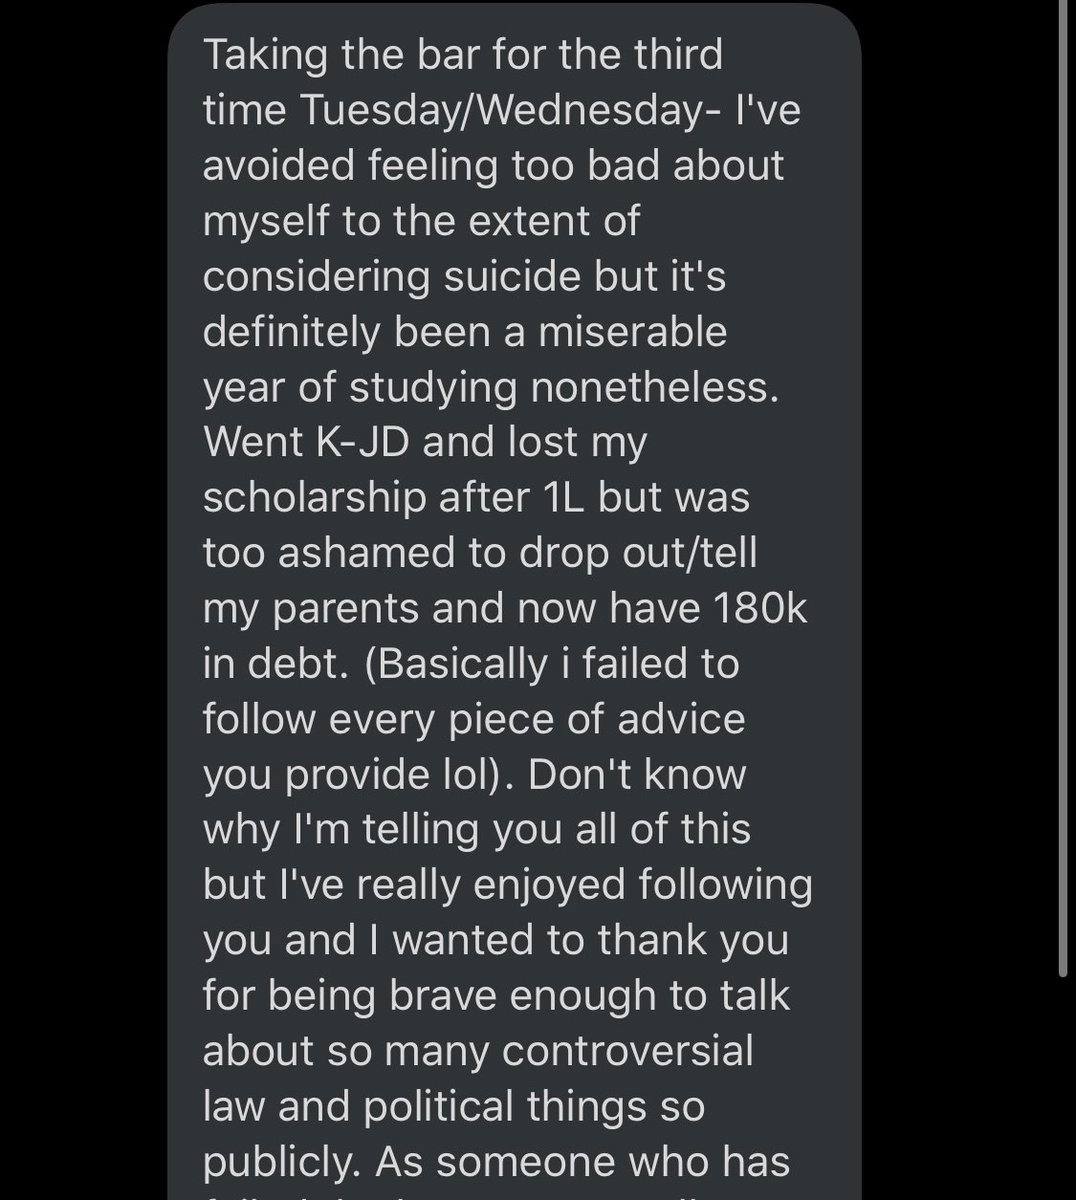 Alex Peter On Twitter Someone Sent Me This Message Imagine The Mental Anguish Of This The Bar Exam Is Honestly Fucked Some People Just Have A Hard Time With Tests And The